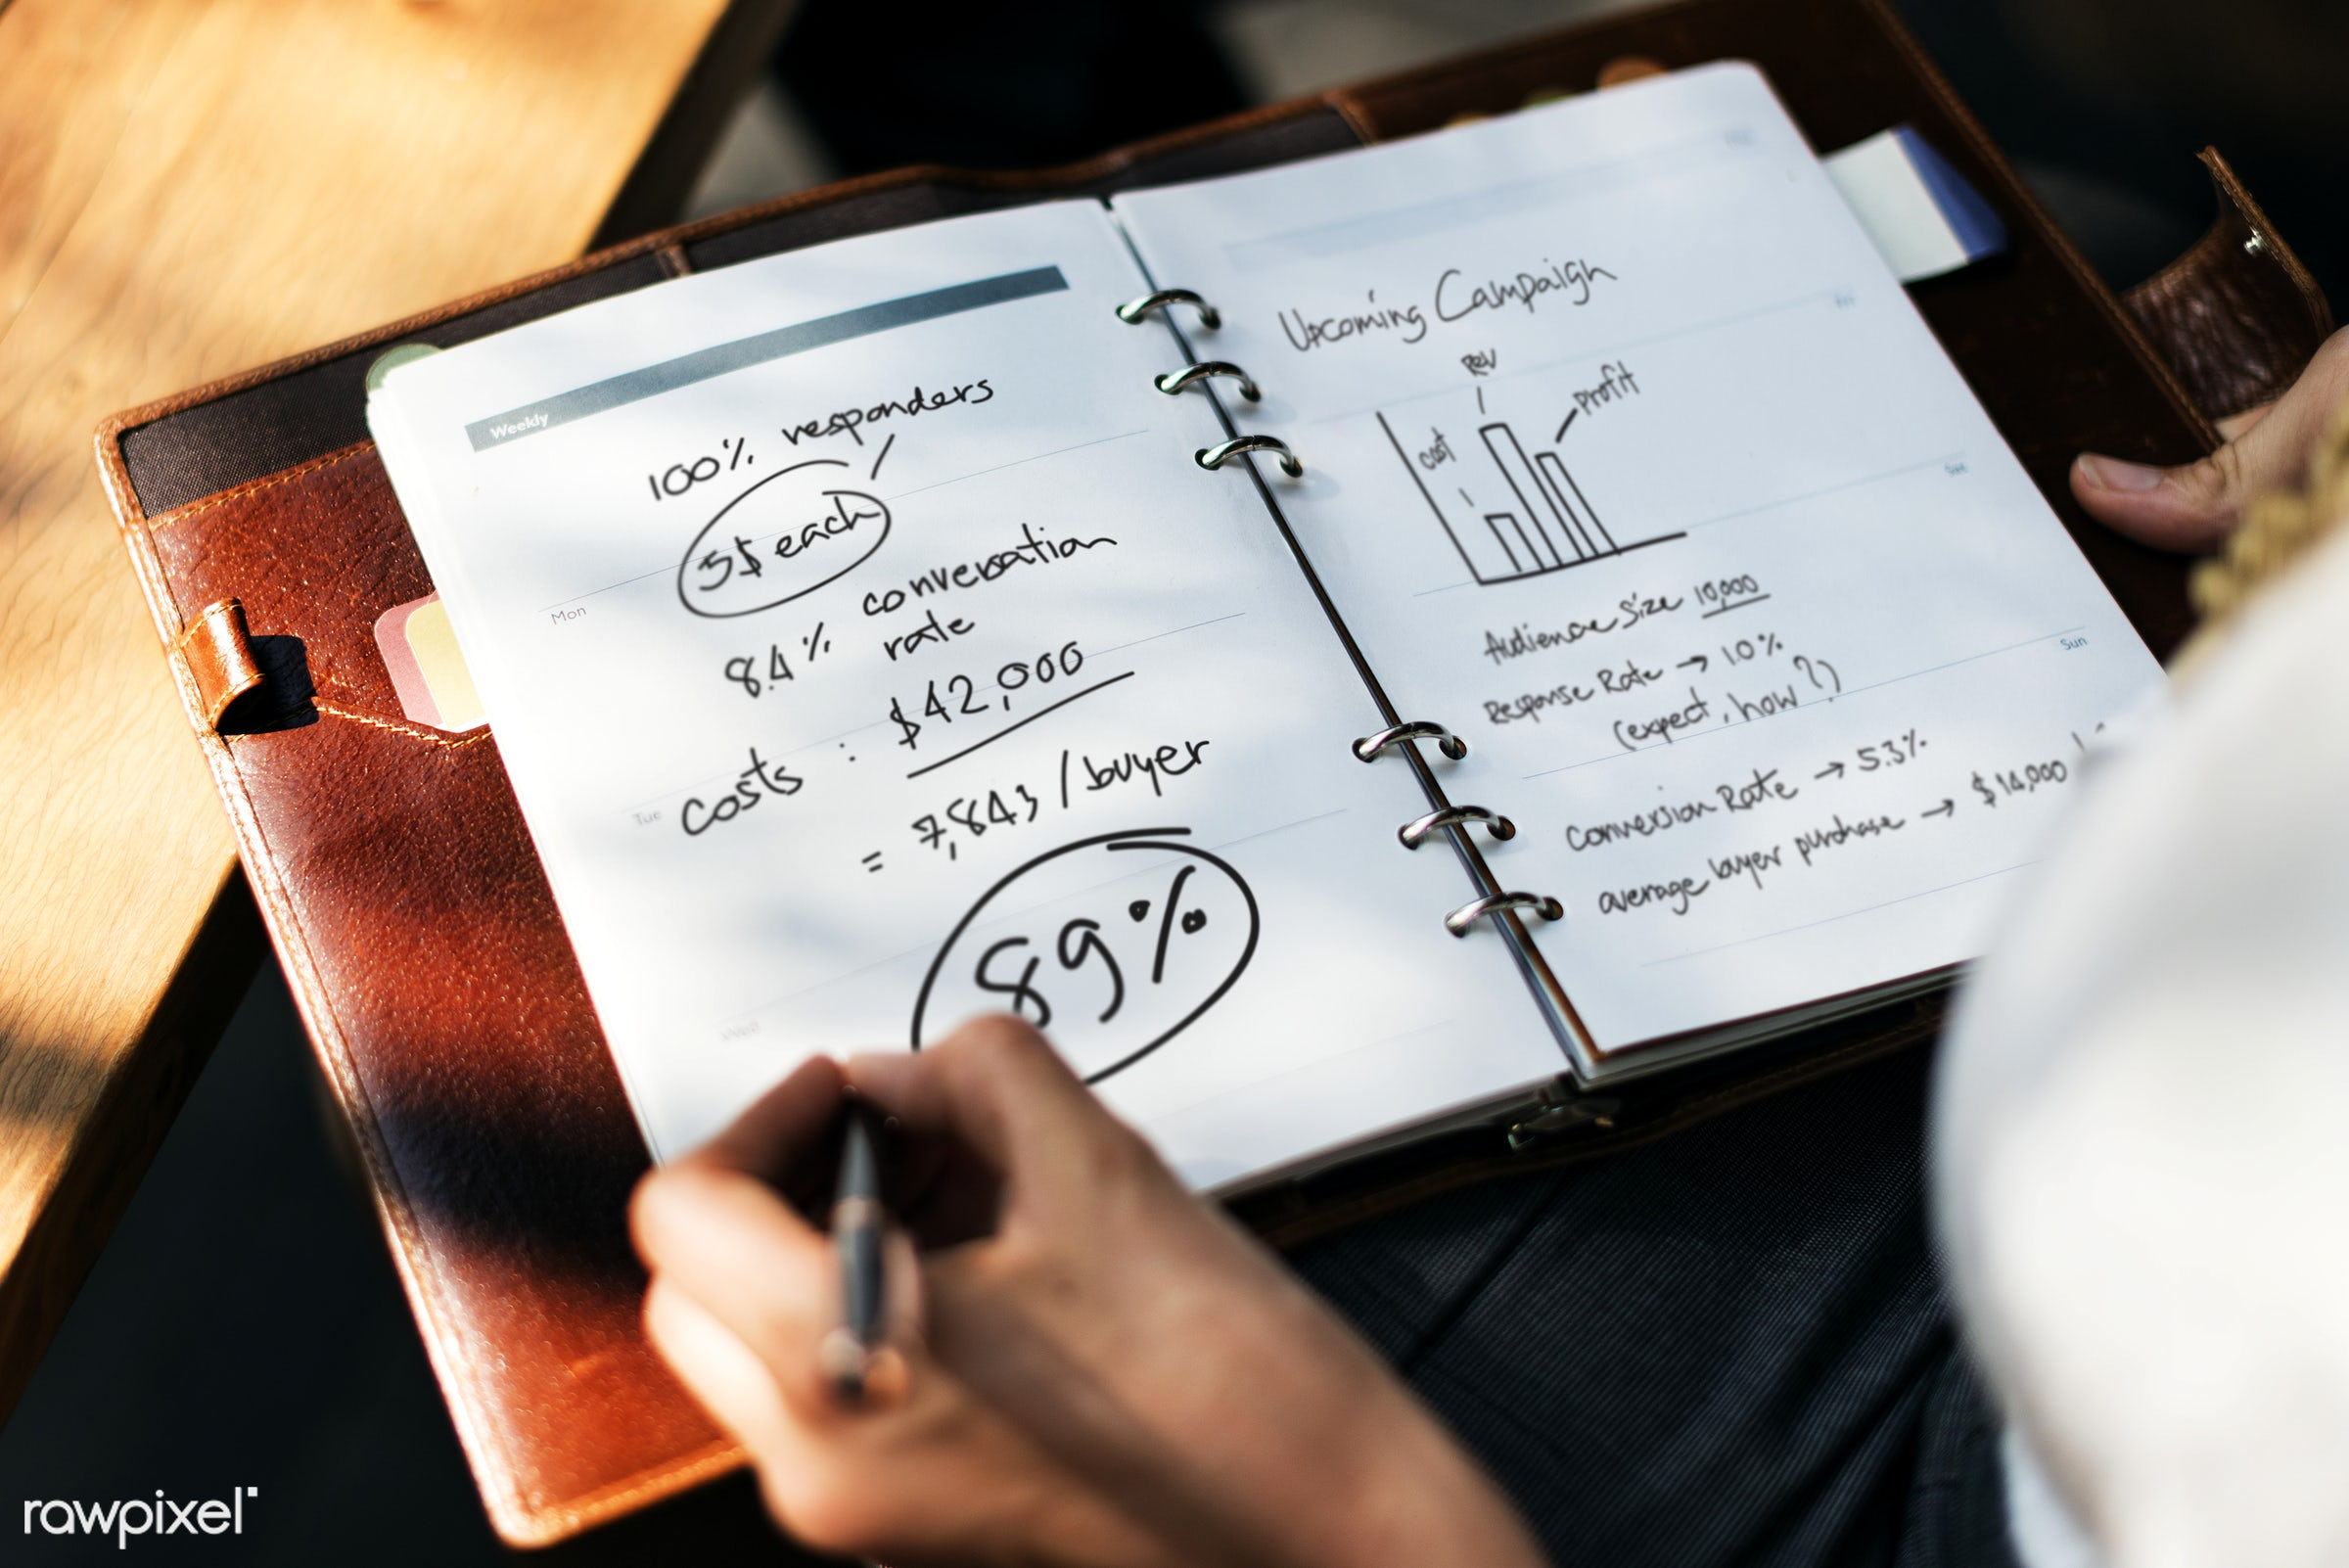 marketing, business, book, graph, planning, cafe, cc0, chart, coffee shop, creative common 0, creative commons 0, note,...